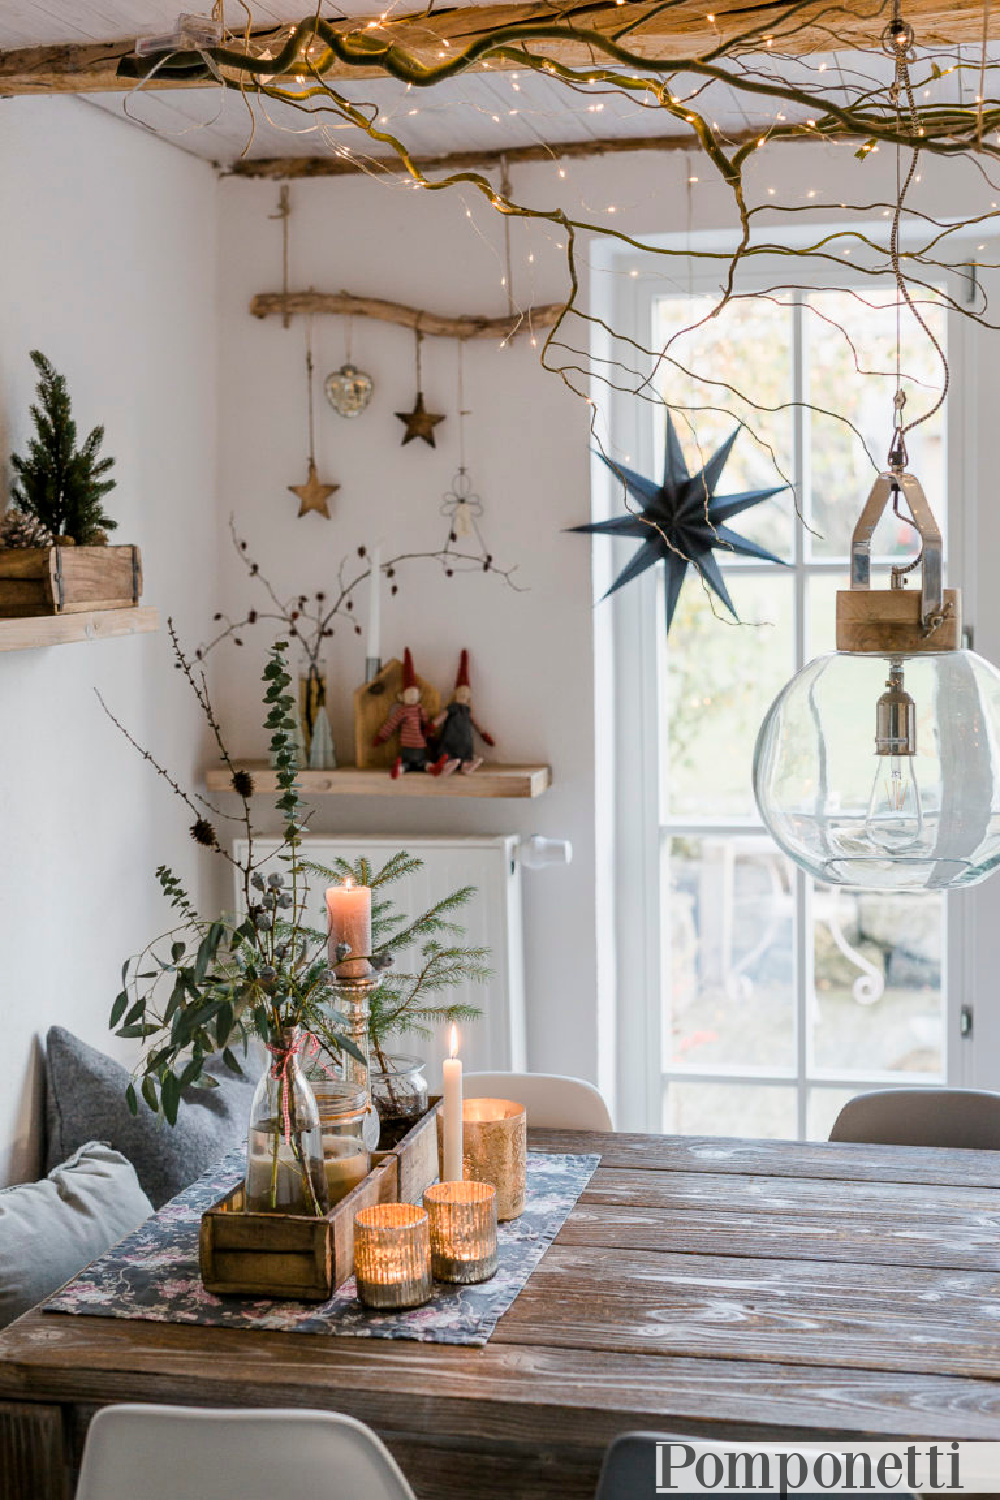 Scandi Christmas rustic decor in a dining area with driftwood, ornaments, branches, and white fairy lights - Pomponetti. #farmhousechristmas #christmasdecor #rusticchristmas #scandichristmas